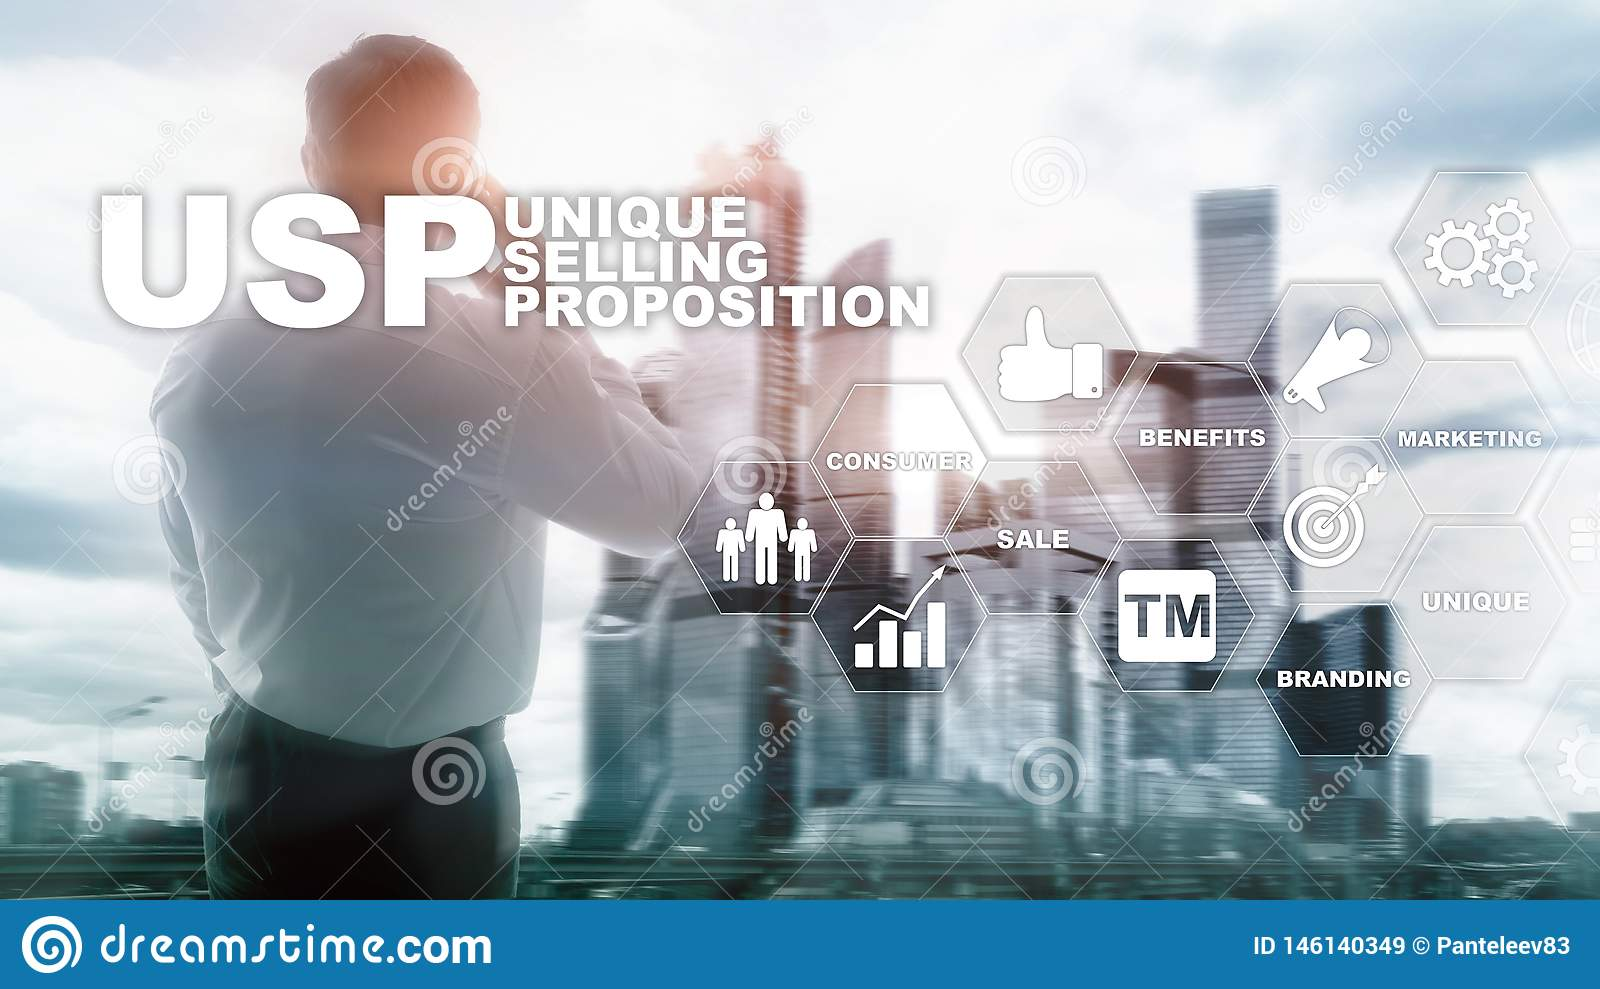 UPS - Unique selling propositions. Business and finance concept on a virtual structured screen. Mixed media.